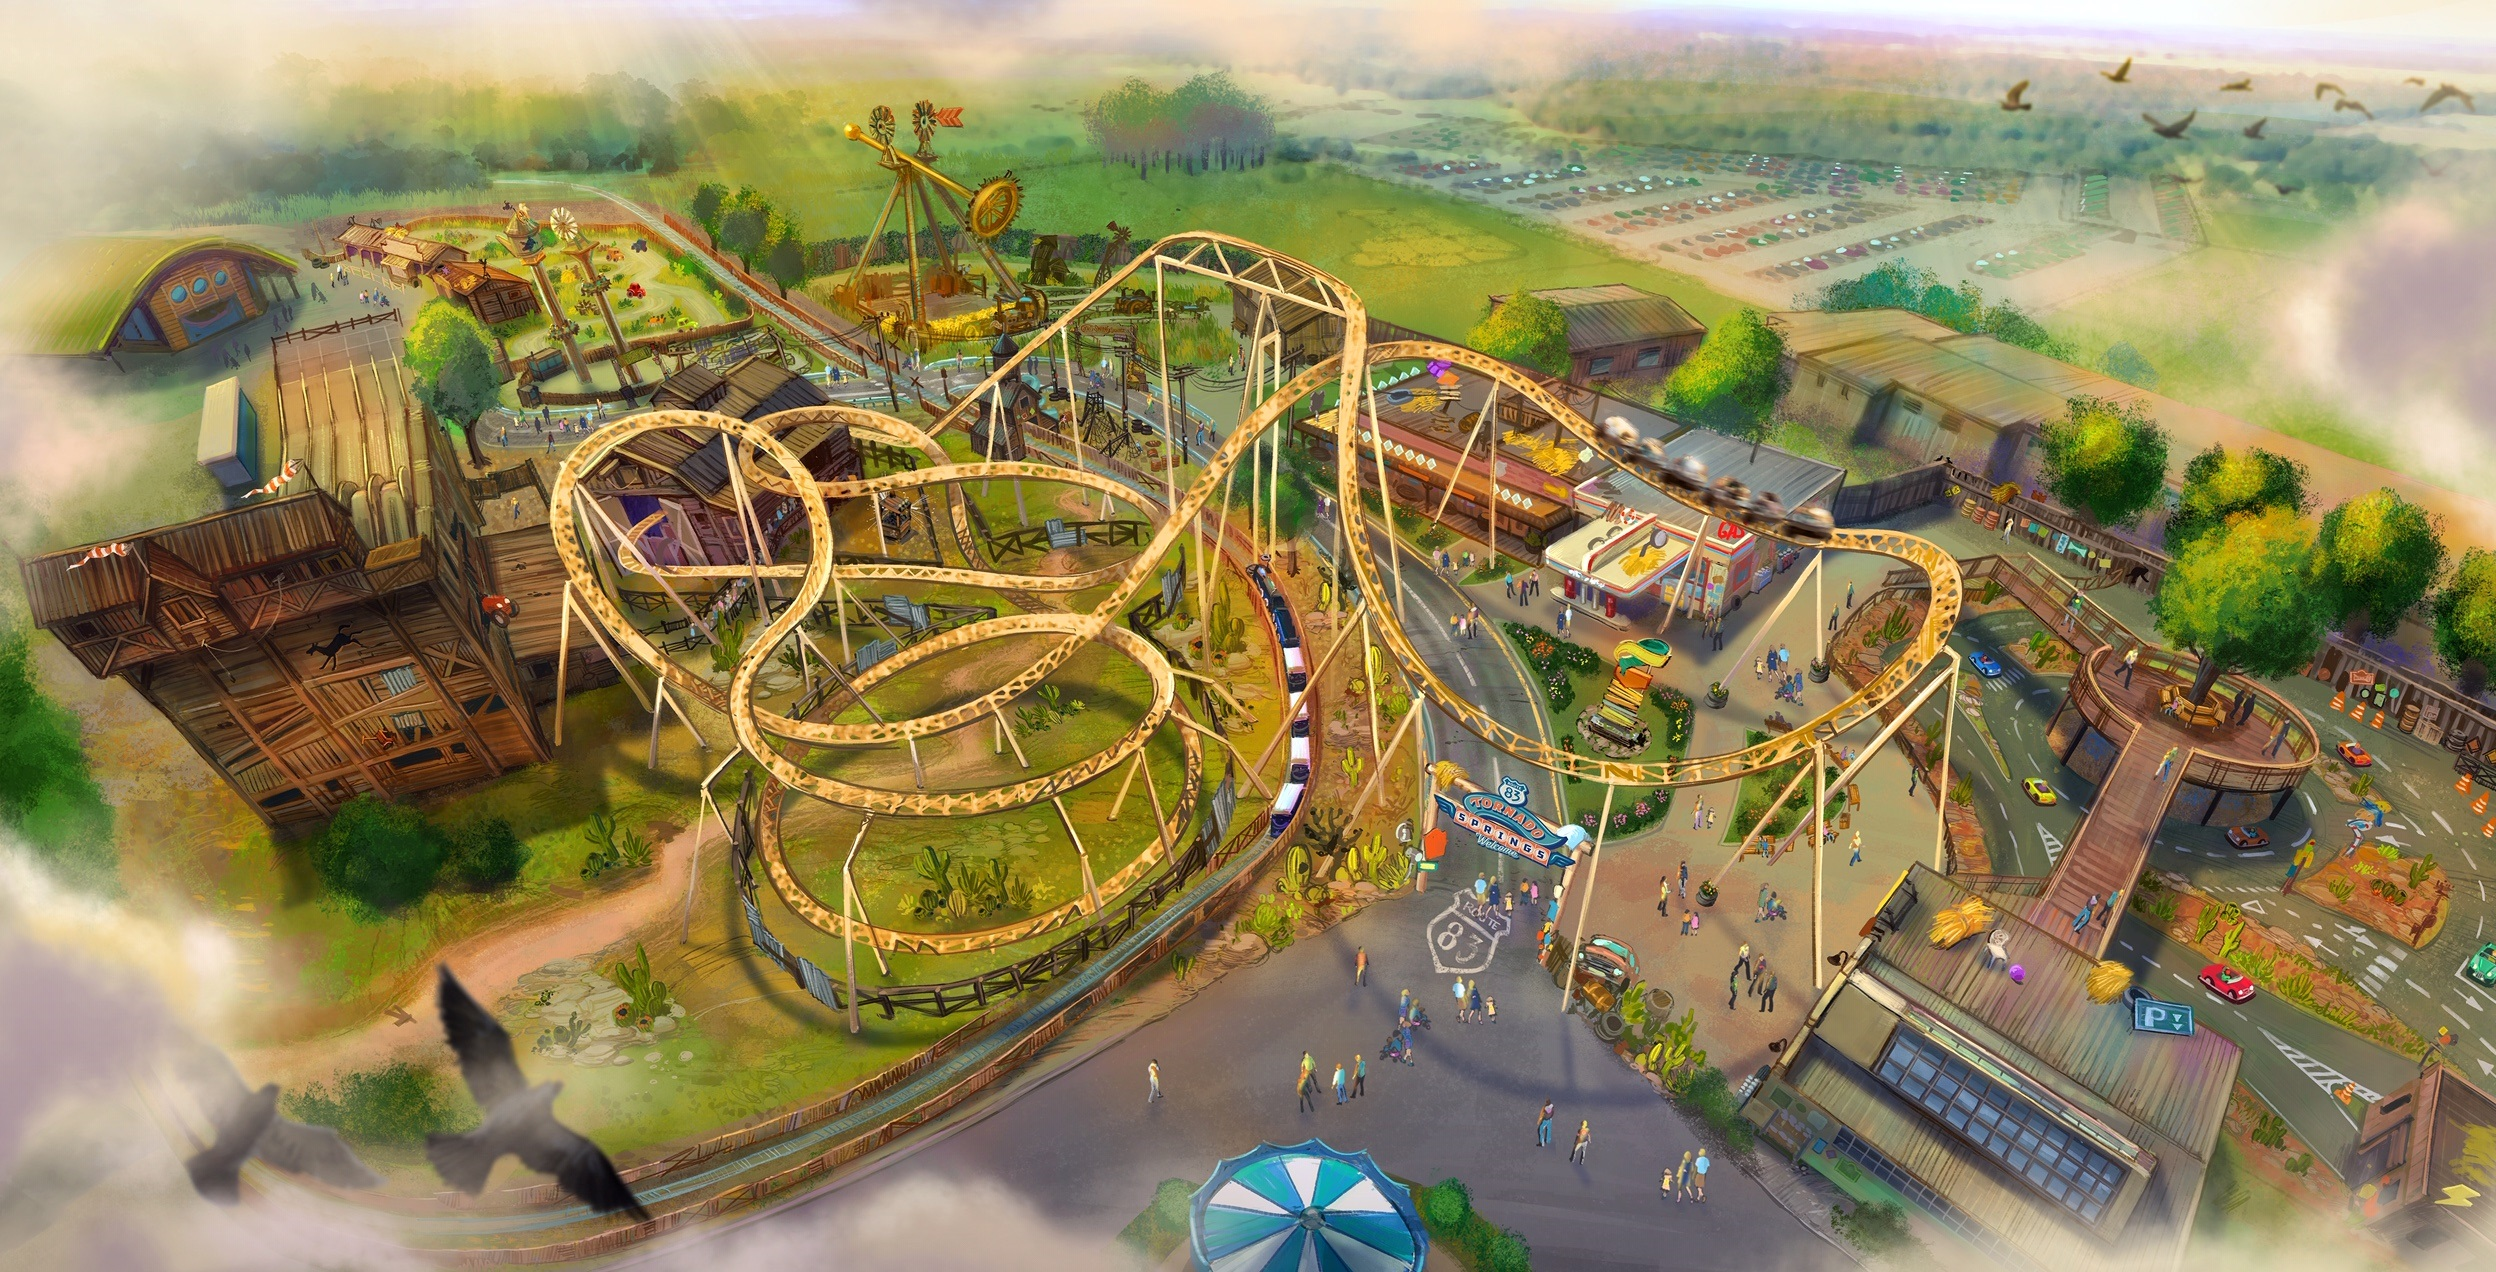 Artists impression of Tornado Springs at Paultons Park